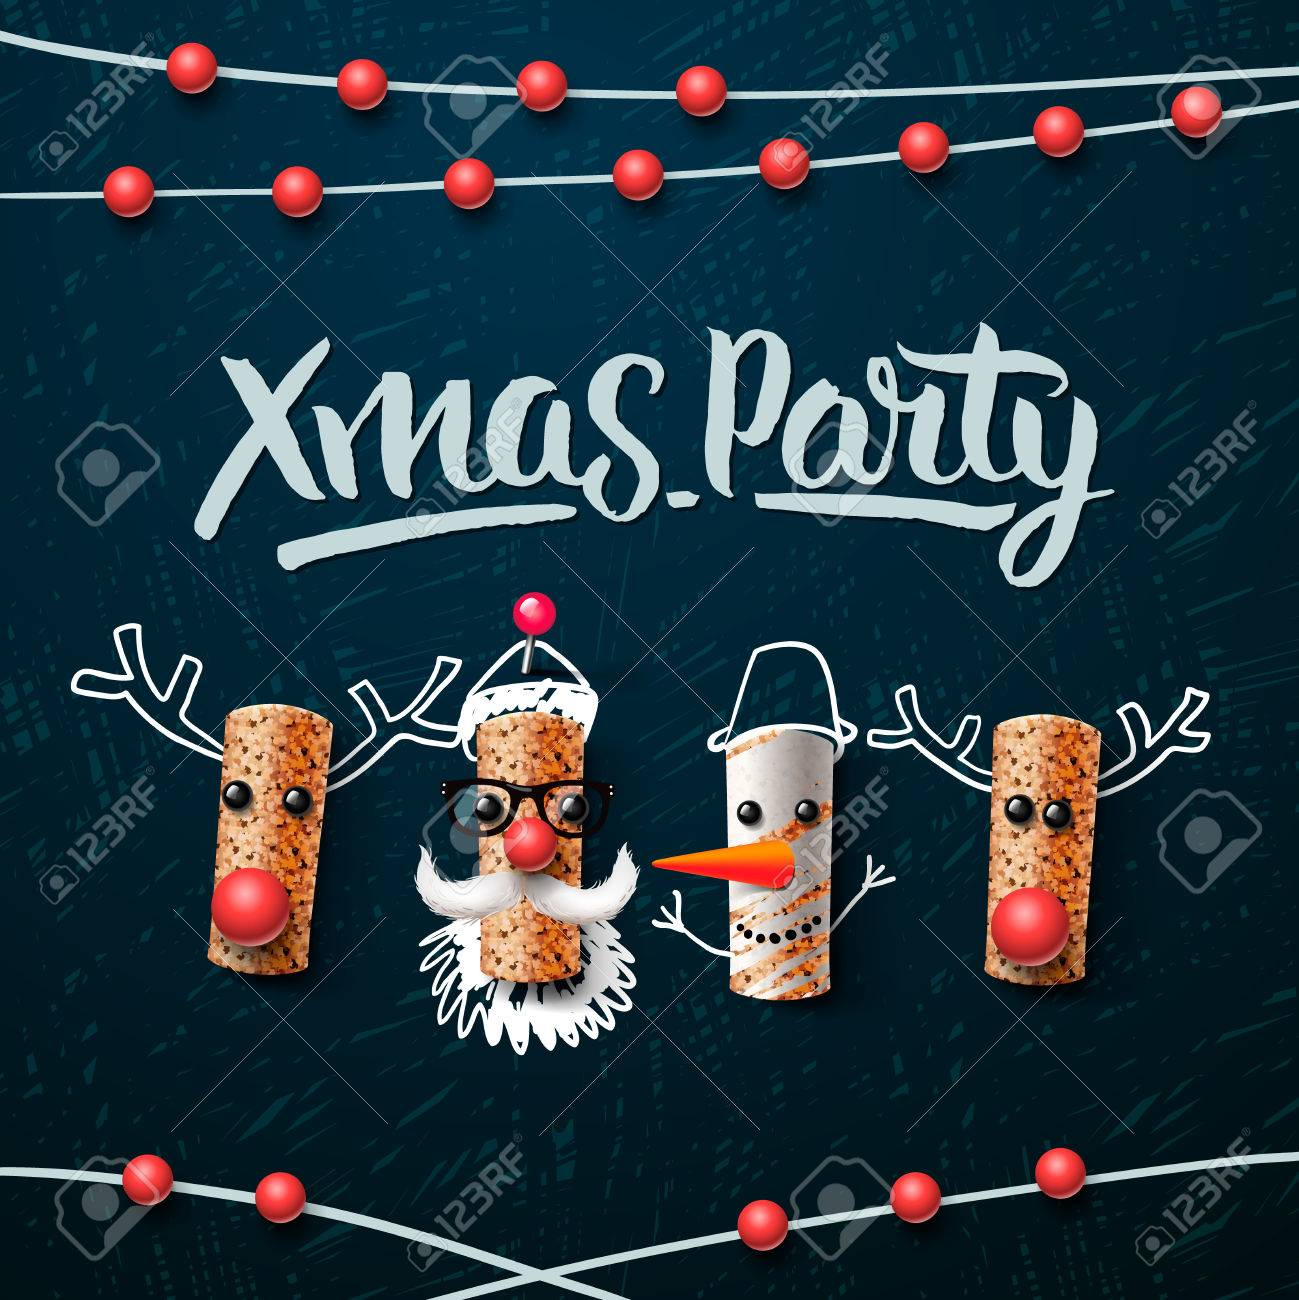 Christmas party template, Christmas characters, Santa Claus, snowman and reindeer, made from wine cork, vector illustration. Standard-Bild - 49477273